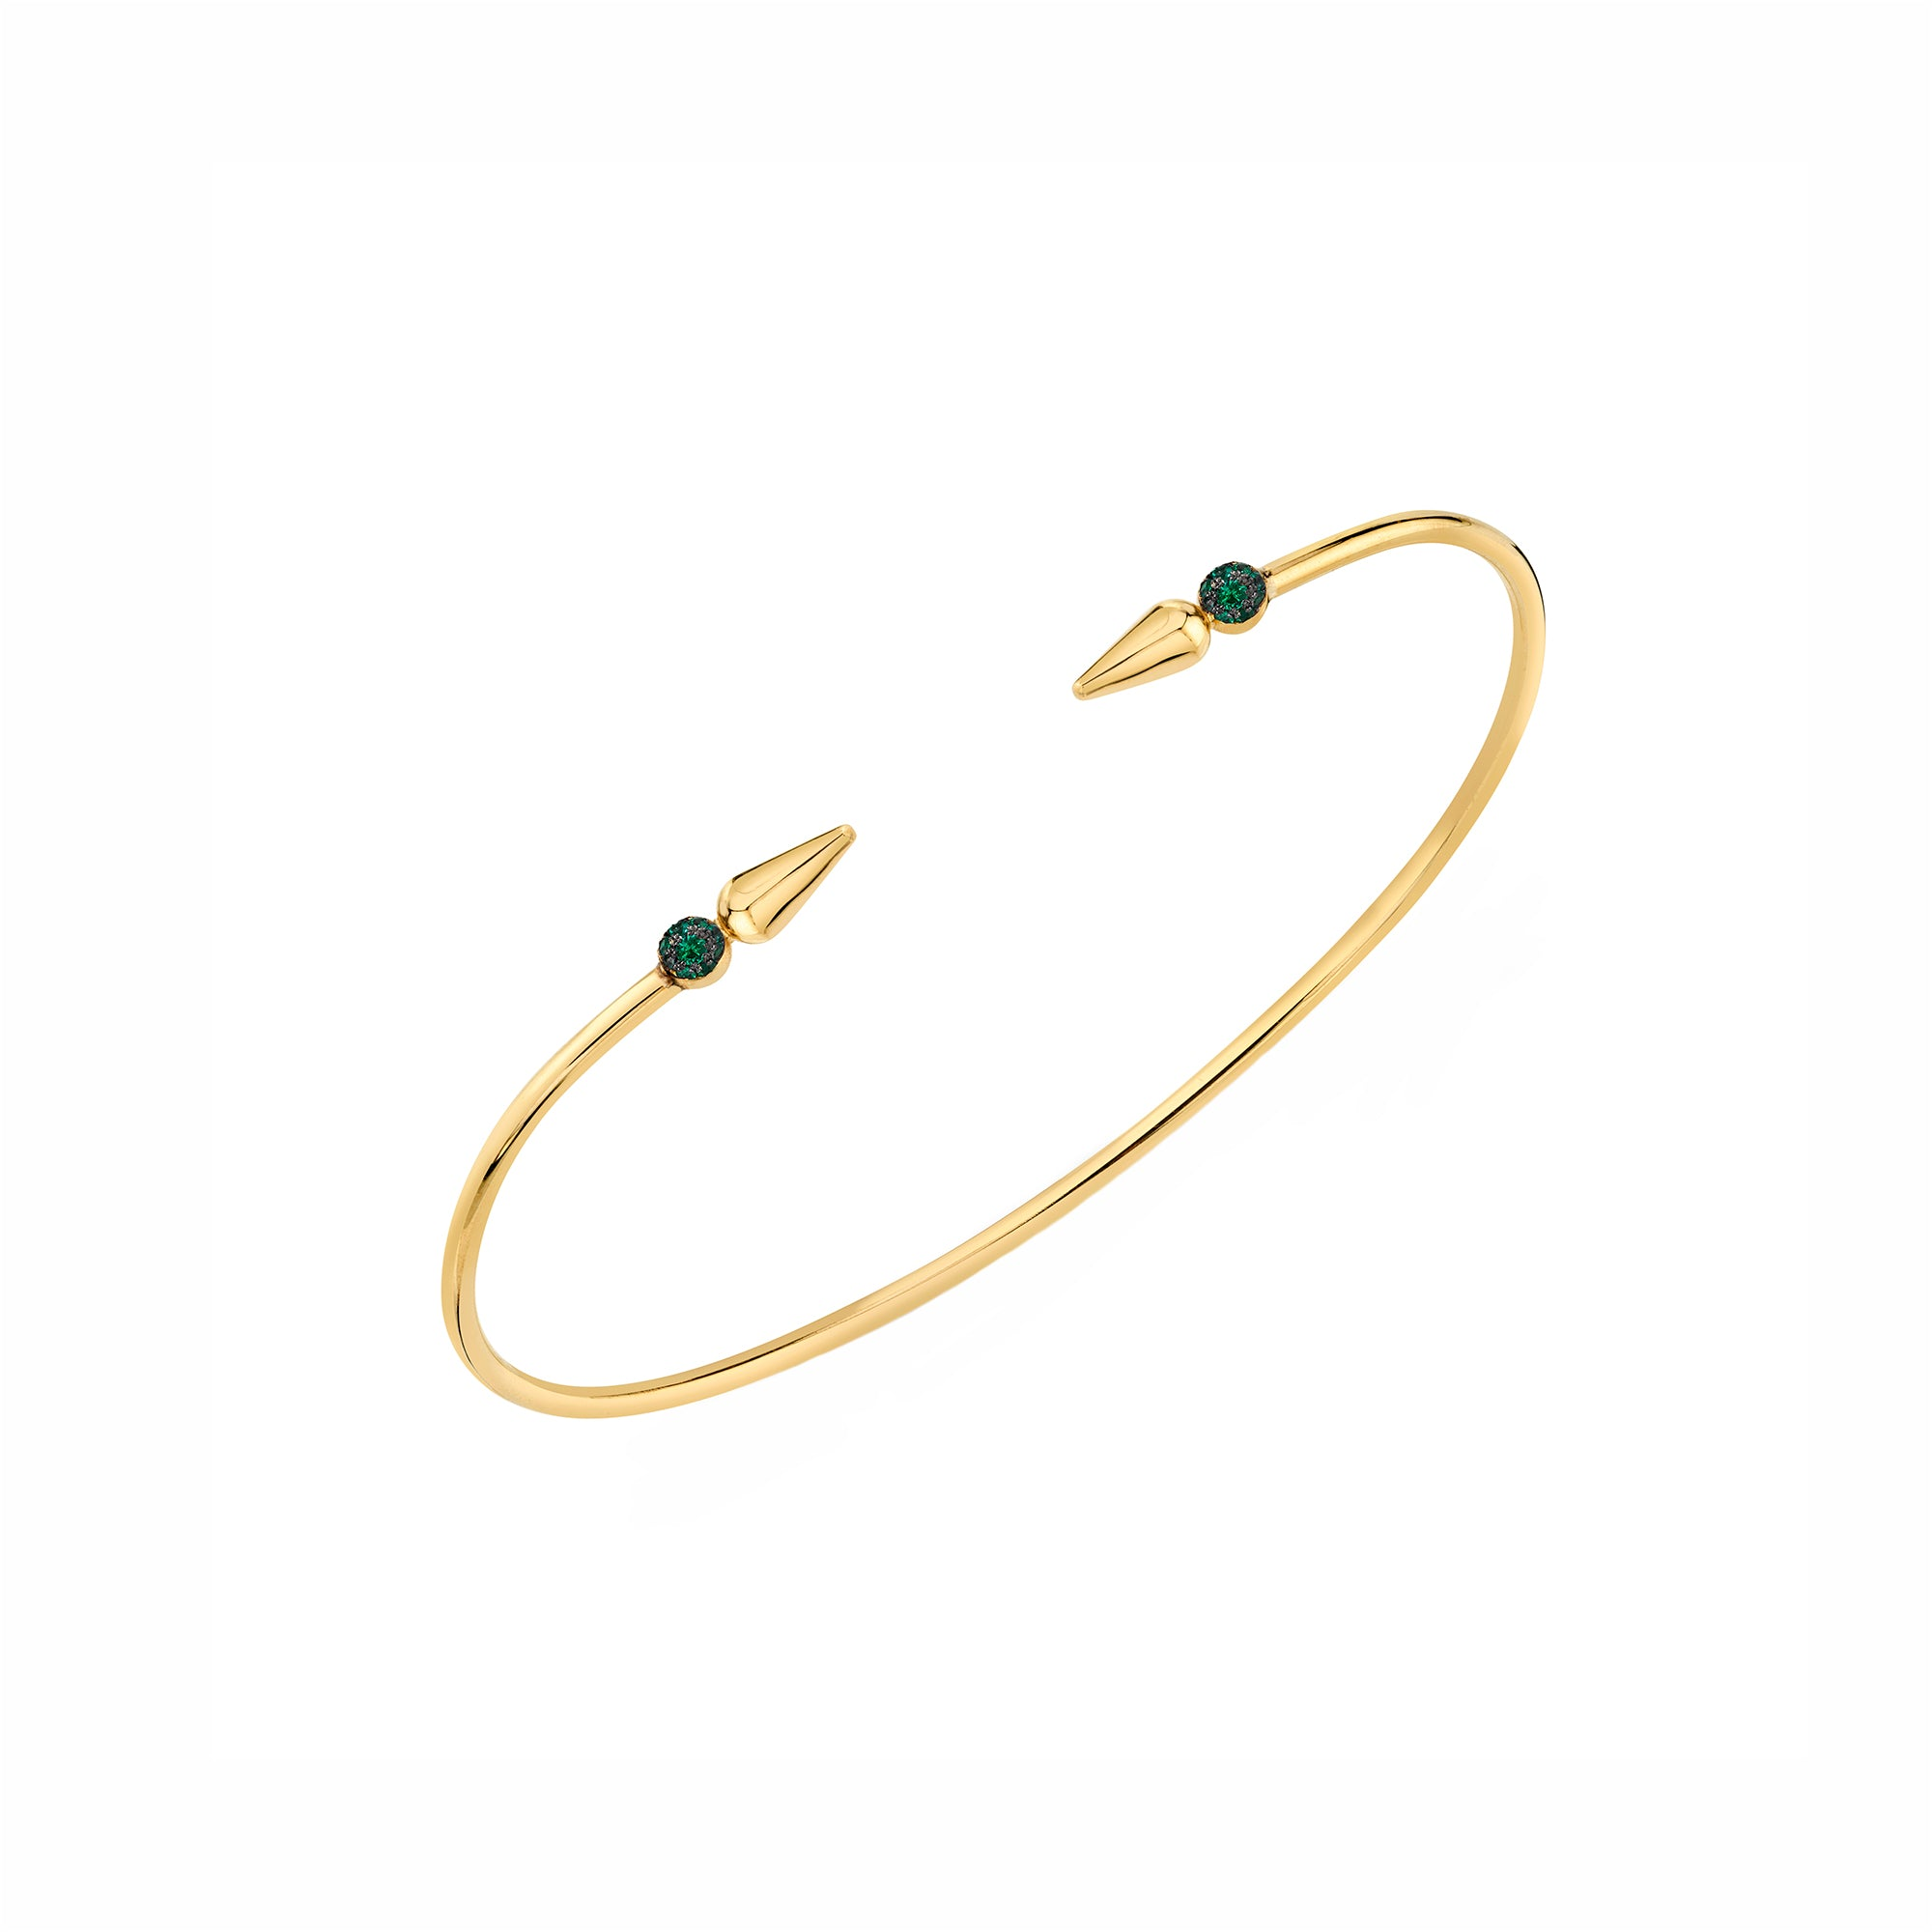 Pave Spear Center Bangle - Emerald - Sarah Hendler - Bracelets | Broken English Jewelry